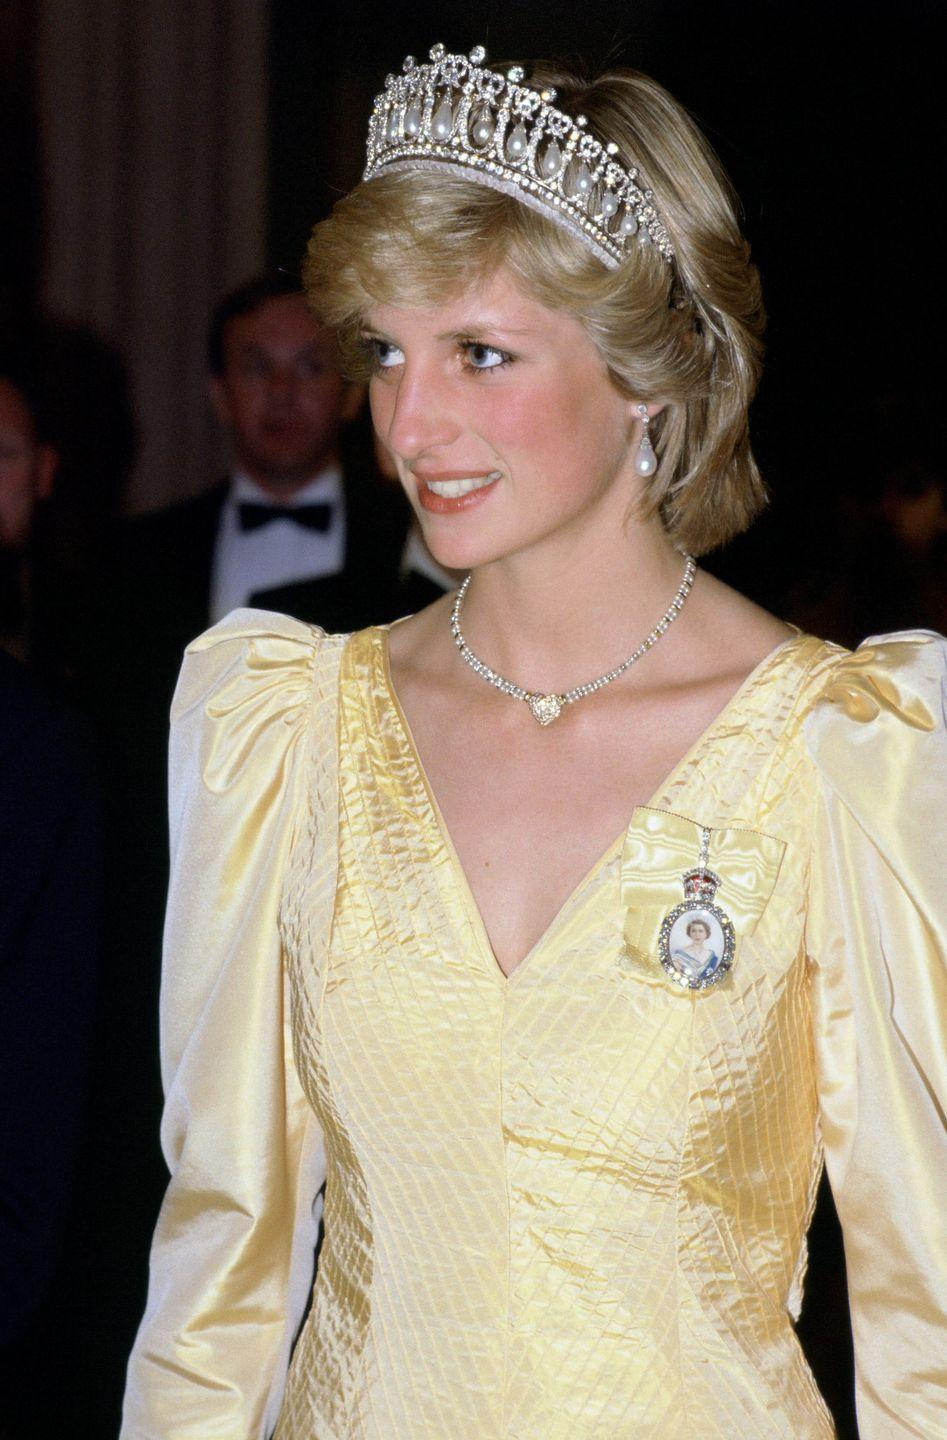 <p>A vision in yellow, the princess brought back the Cambridge Lover's Knot tiara, showing off the headpiece's drop pearls and diamonds. Around Diana's neck is a heart-shaped diamond necklace, a push present from Prince Charles to celebrate Prince William's birth. <br></p>